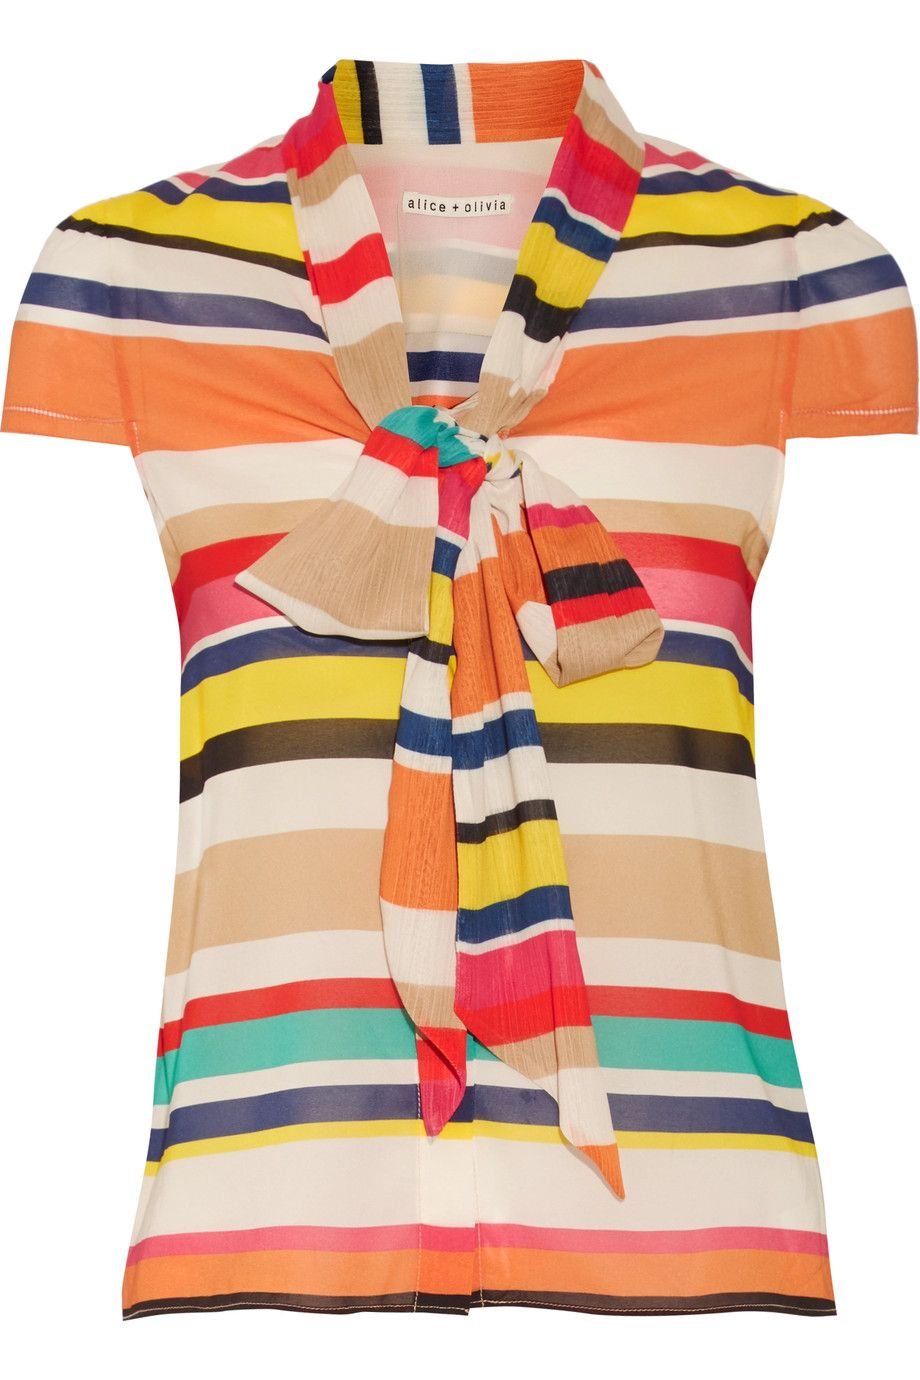 ALICE AND OLIVIA Betsey Pussy-Bow Striped Silk-Blend Top. #aliceandolivia #